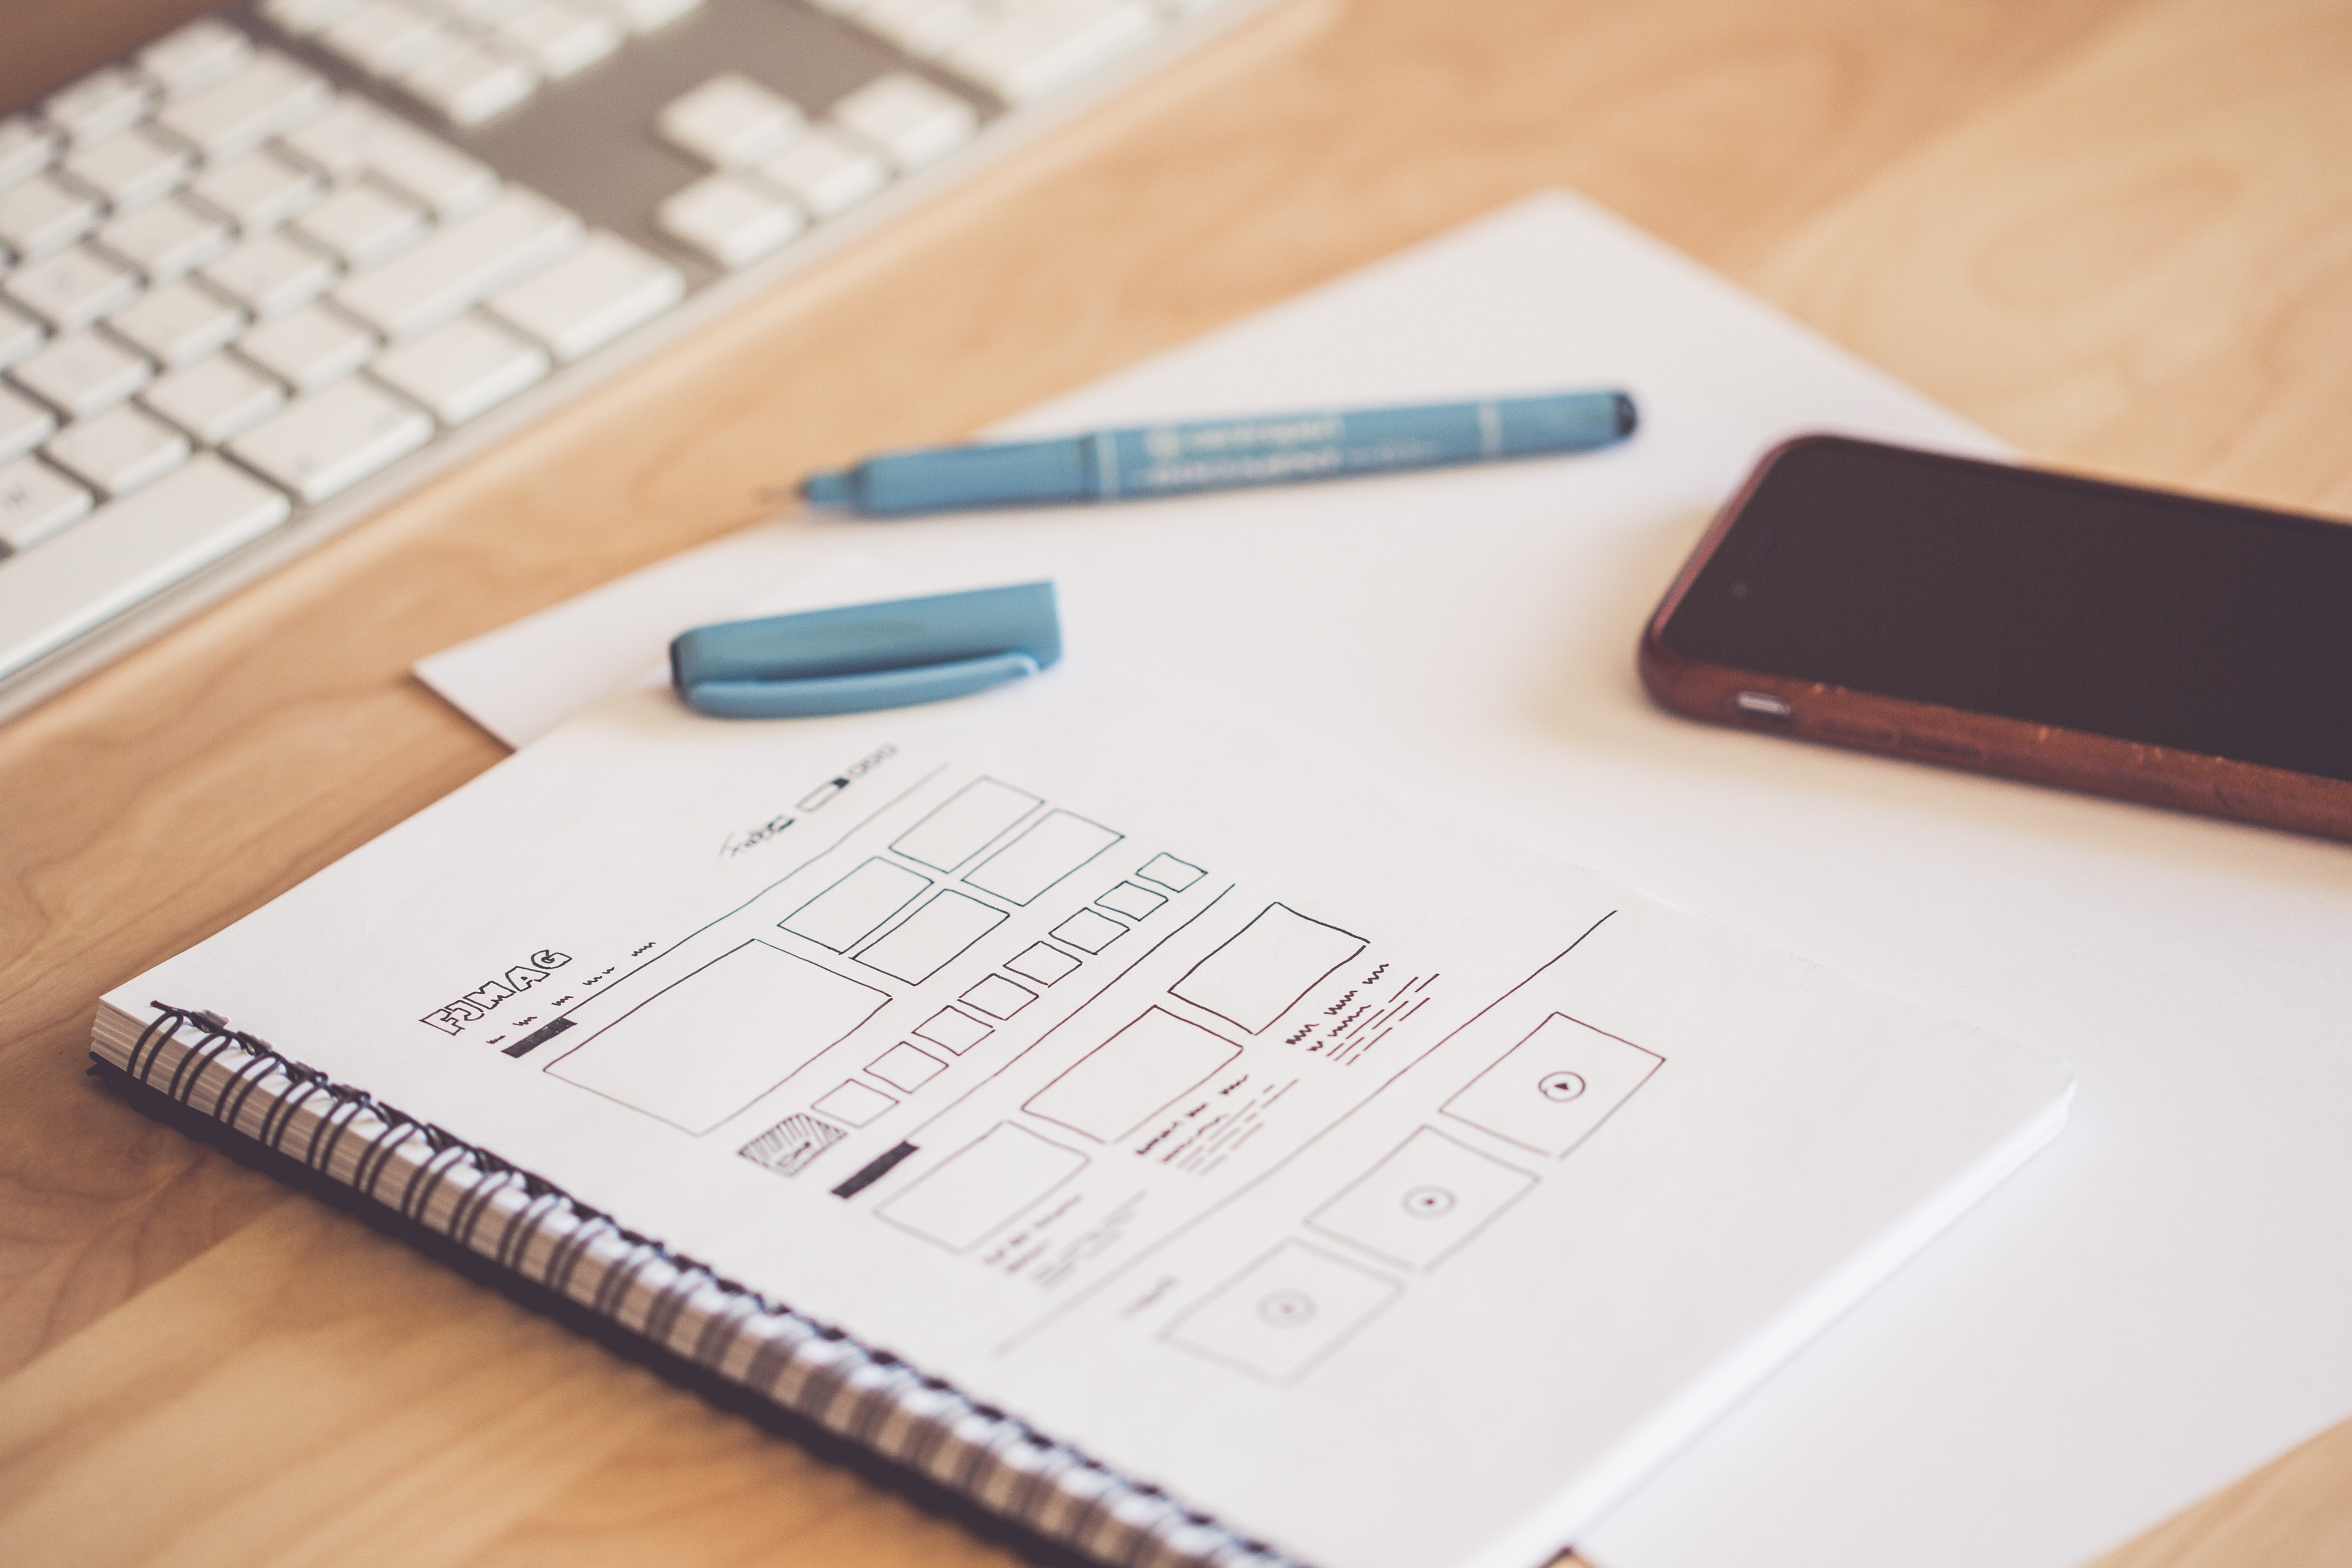 Take Your App Idea to a Prototype in 5 Easy Steps